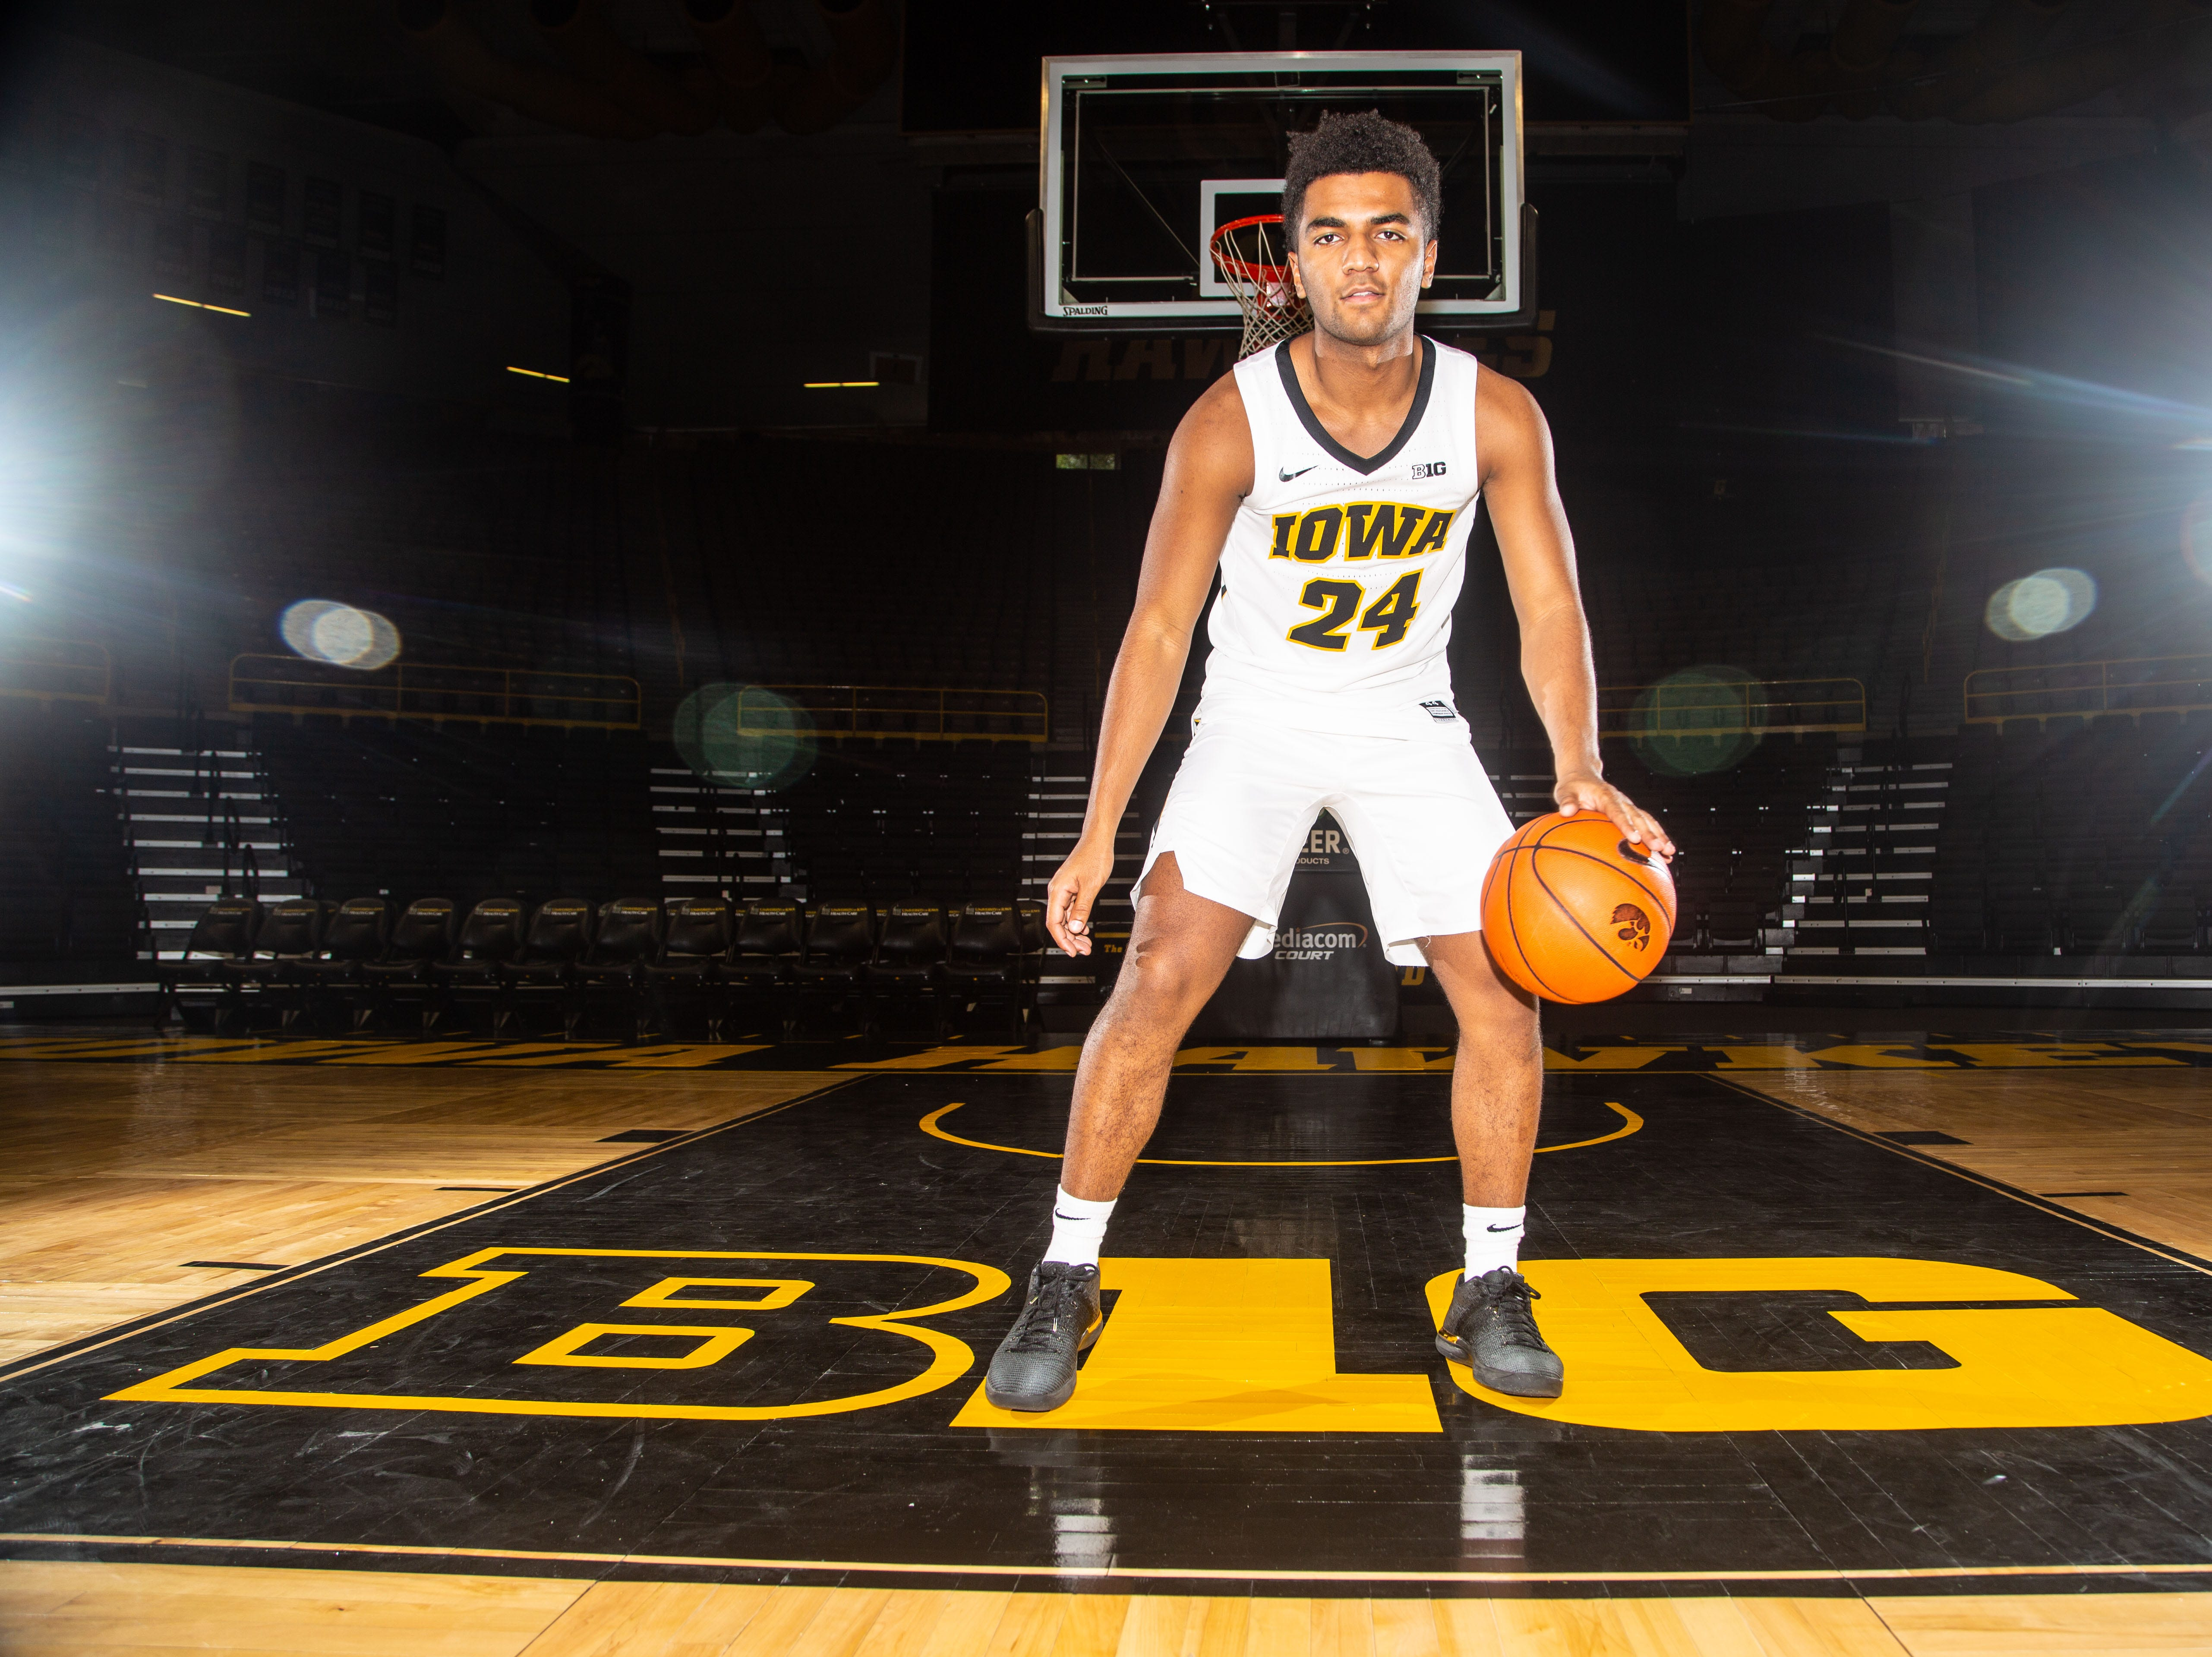 Iowa guard Nicolas Hobbs poses for a photo during Hawkeye media day at Carver Hawkeye ArenaMonday, Oct. 8, 2018.